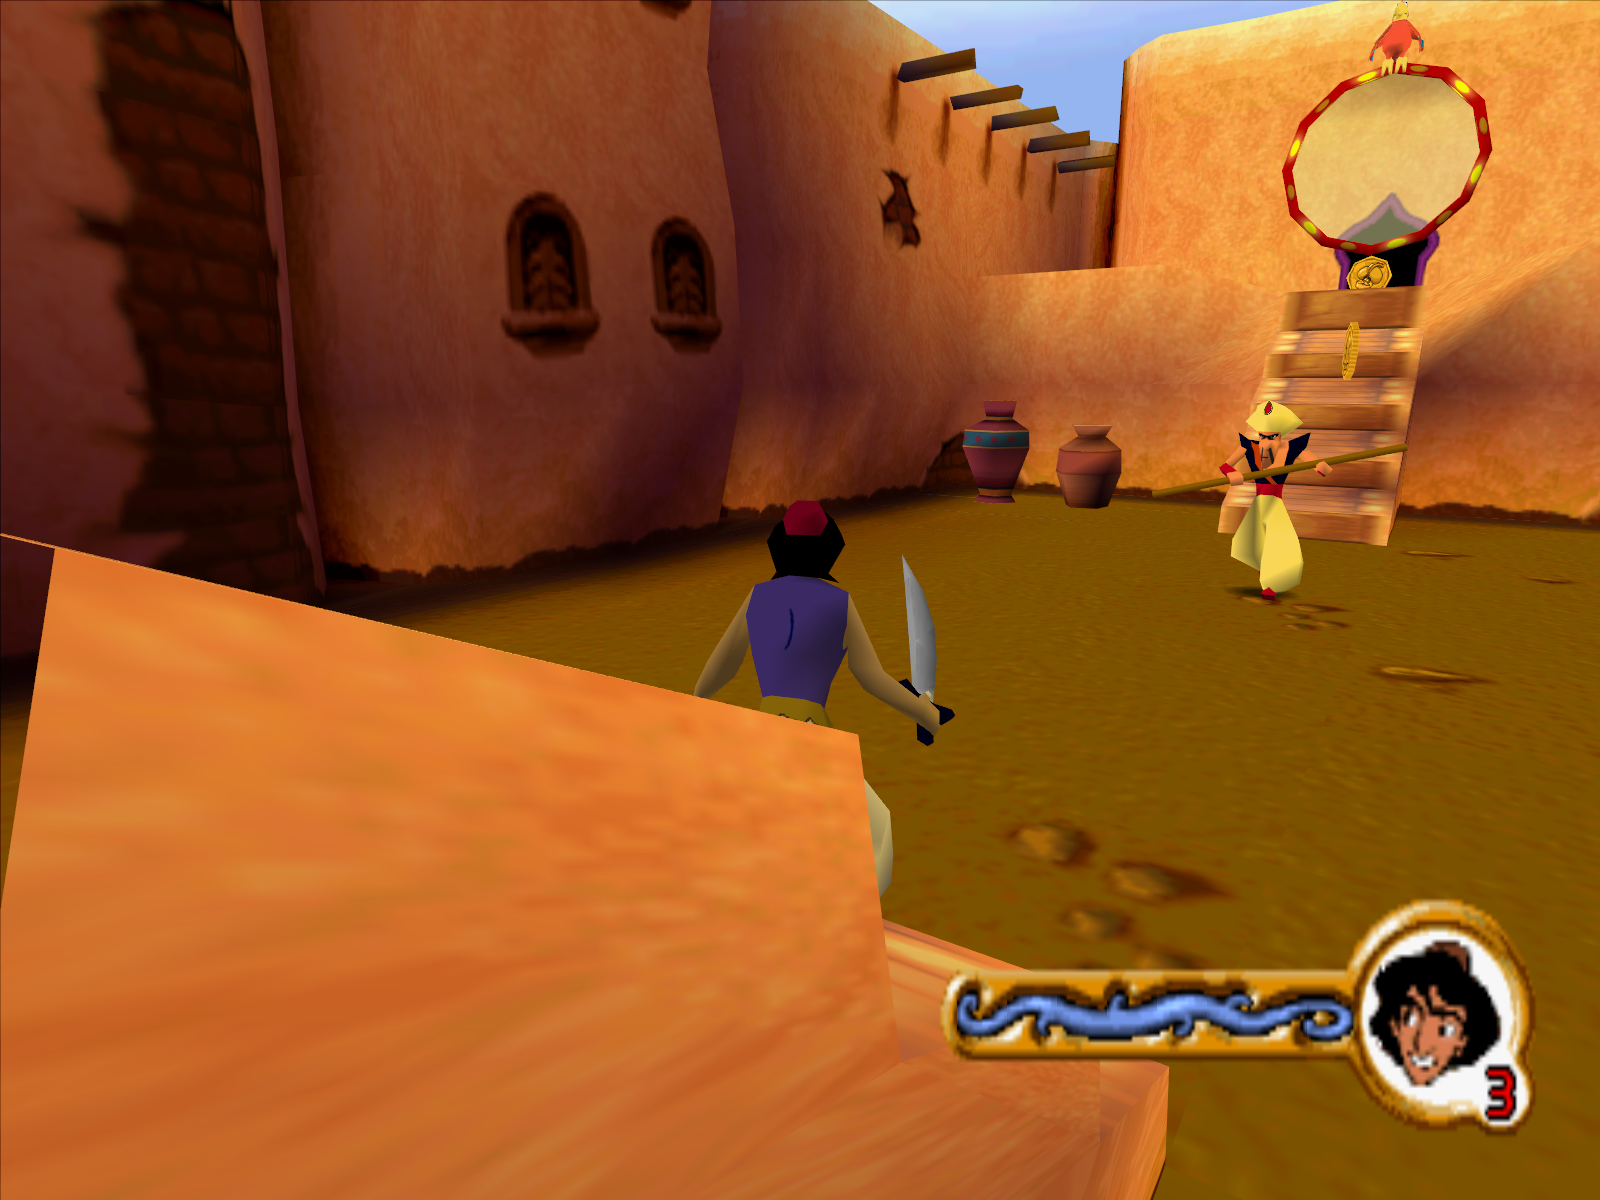 Disney's Aladdin in Nasira's Revenge Windows Getting into my first swordfight on the streets of Agrabah.